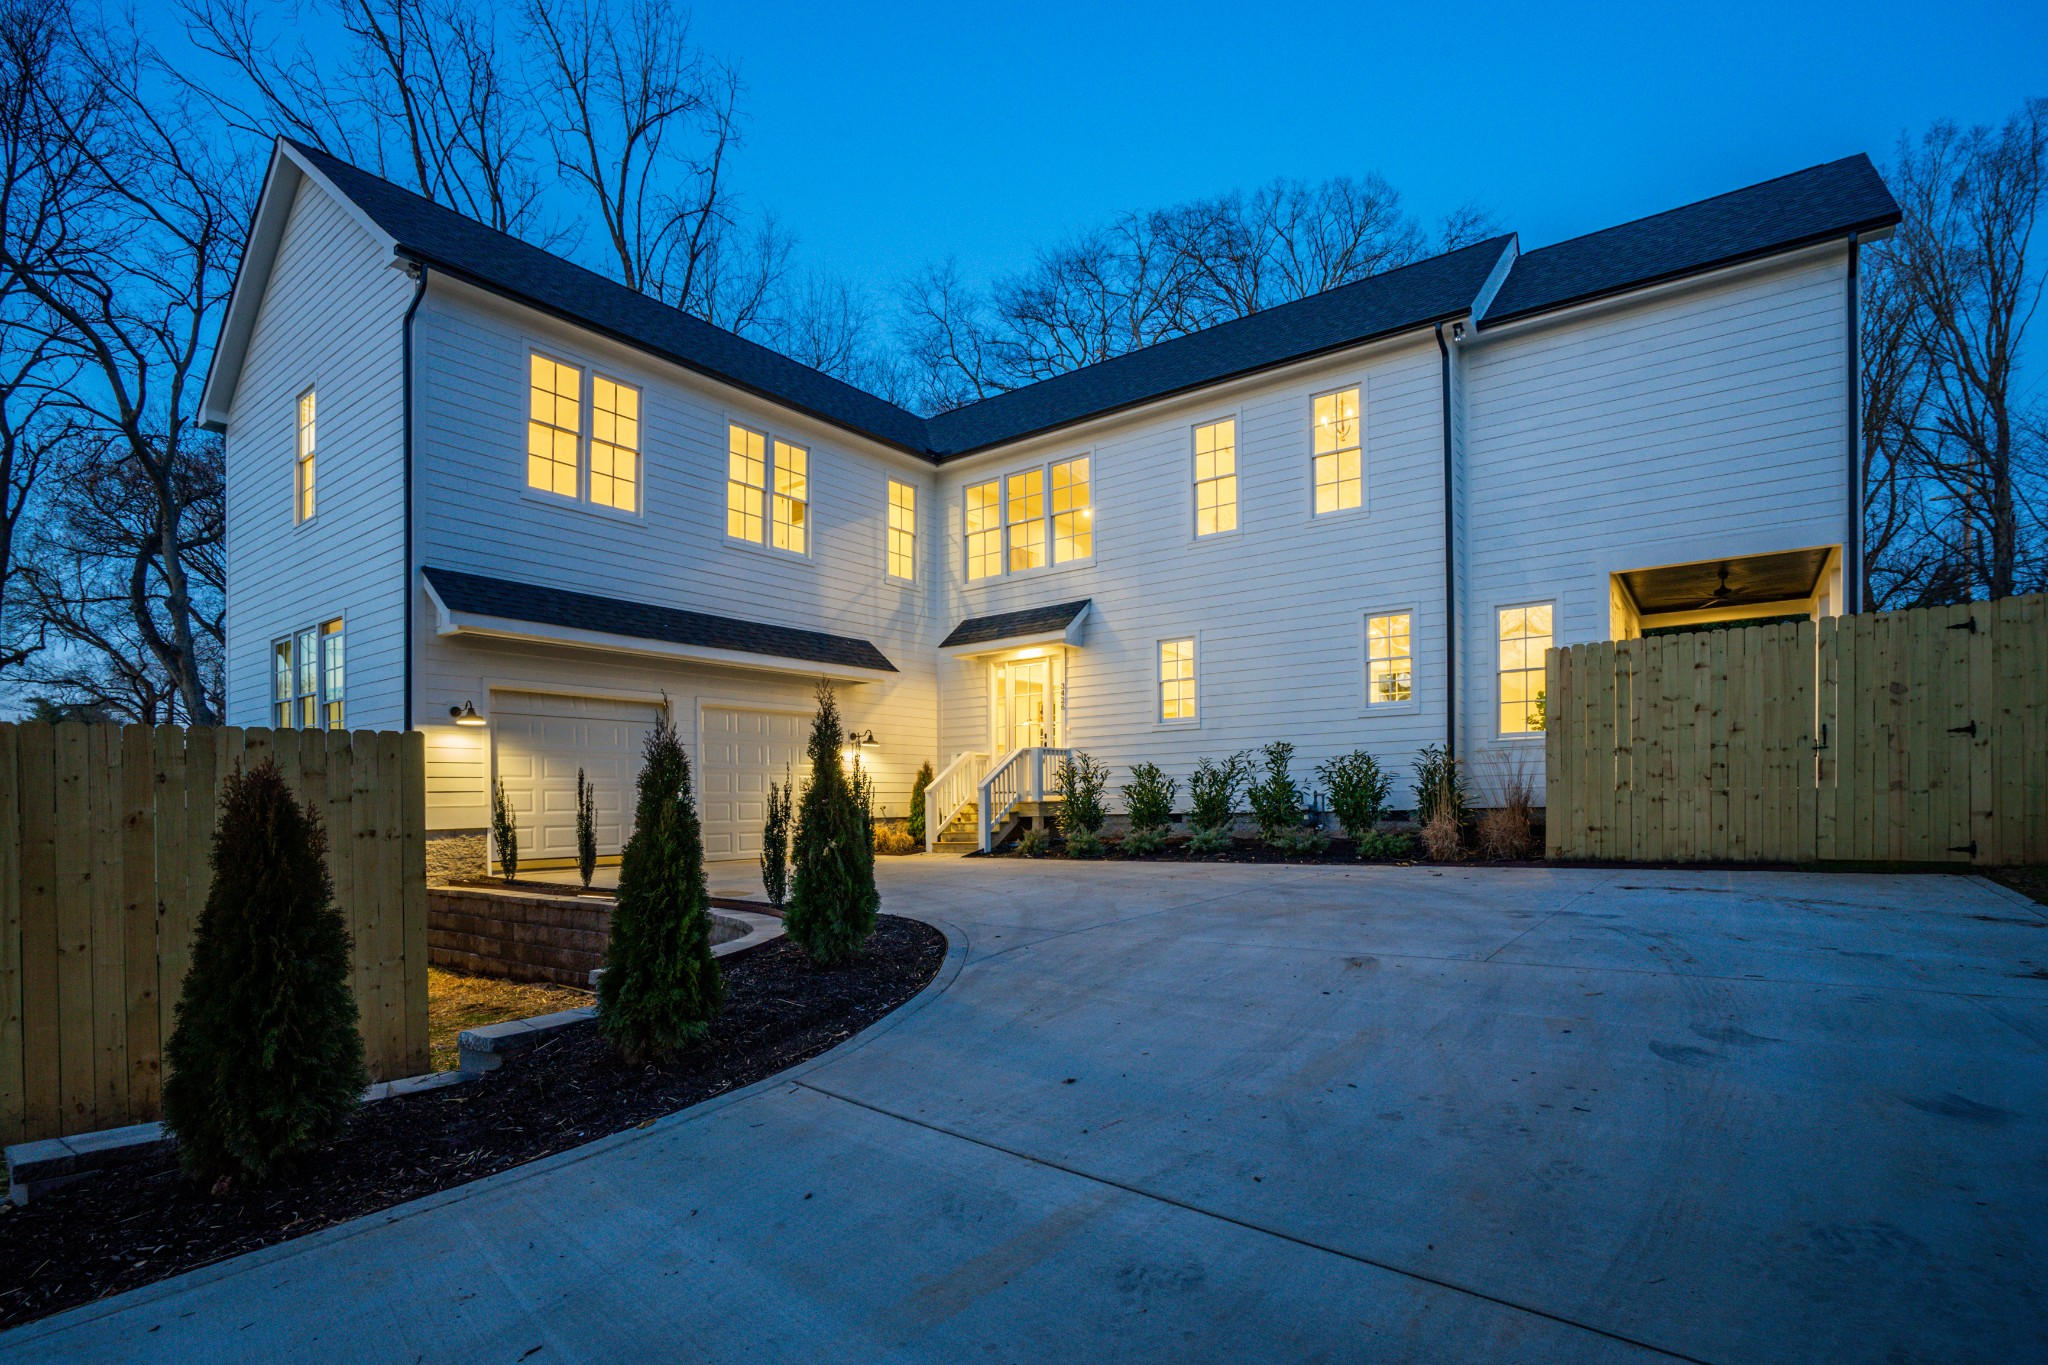 3426 Springbrook Dr, Nashville, TN 37204 - Nashville, TN real estate listing